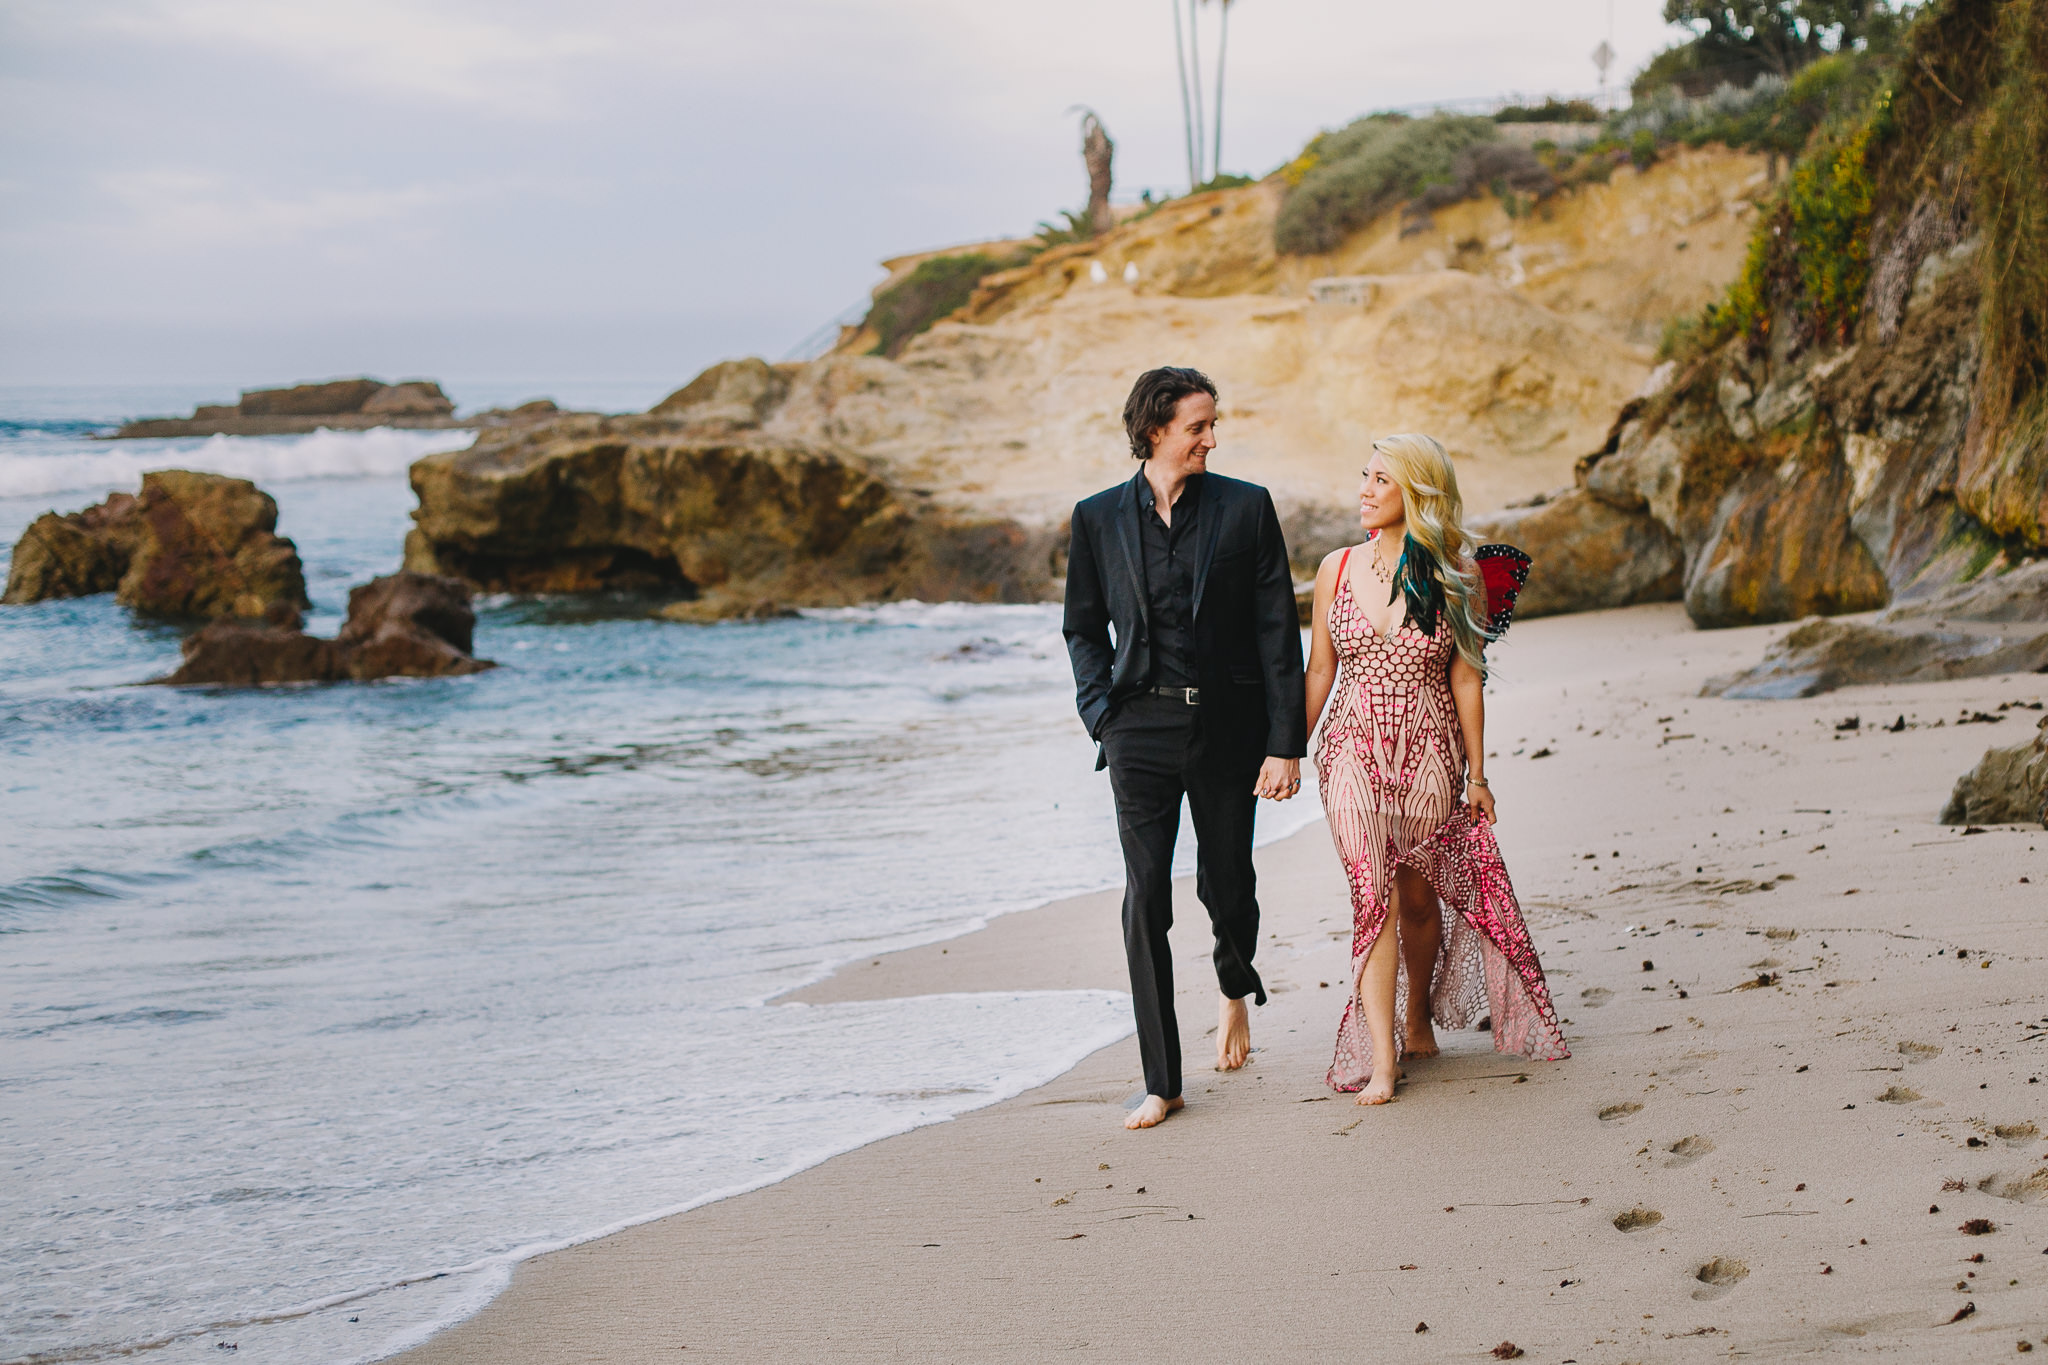 Archer Inspired Photography Amy and Kyle Wedding Engagement Session Long Beach Los Angeles California SoCal Best Top Rated Affordable Lifestyle Documentary Natural Light Fun Offbeat Unique Photographer-10.jpg